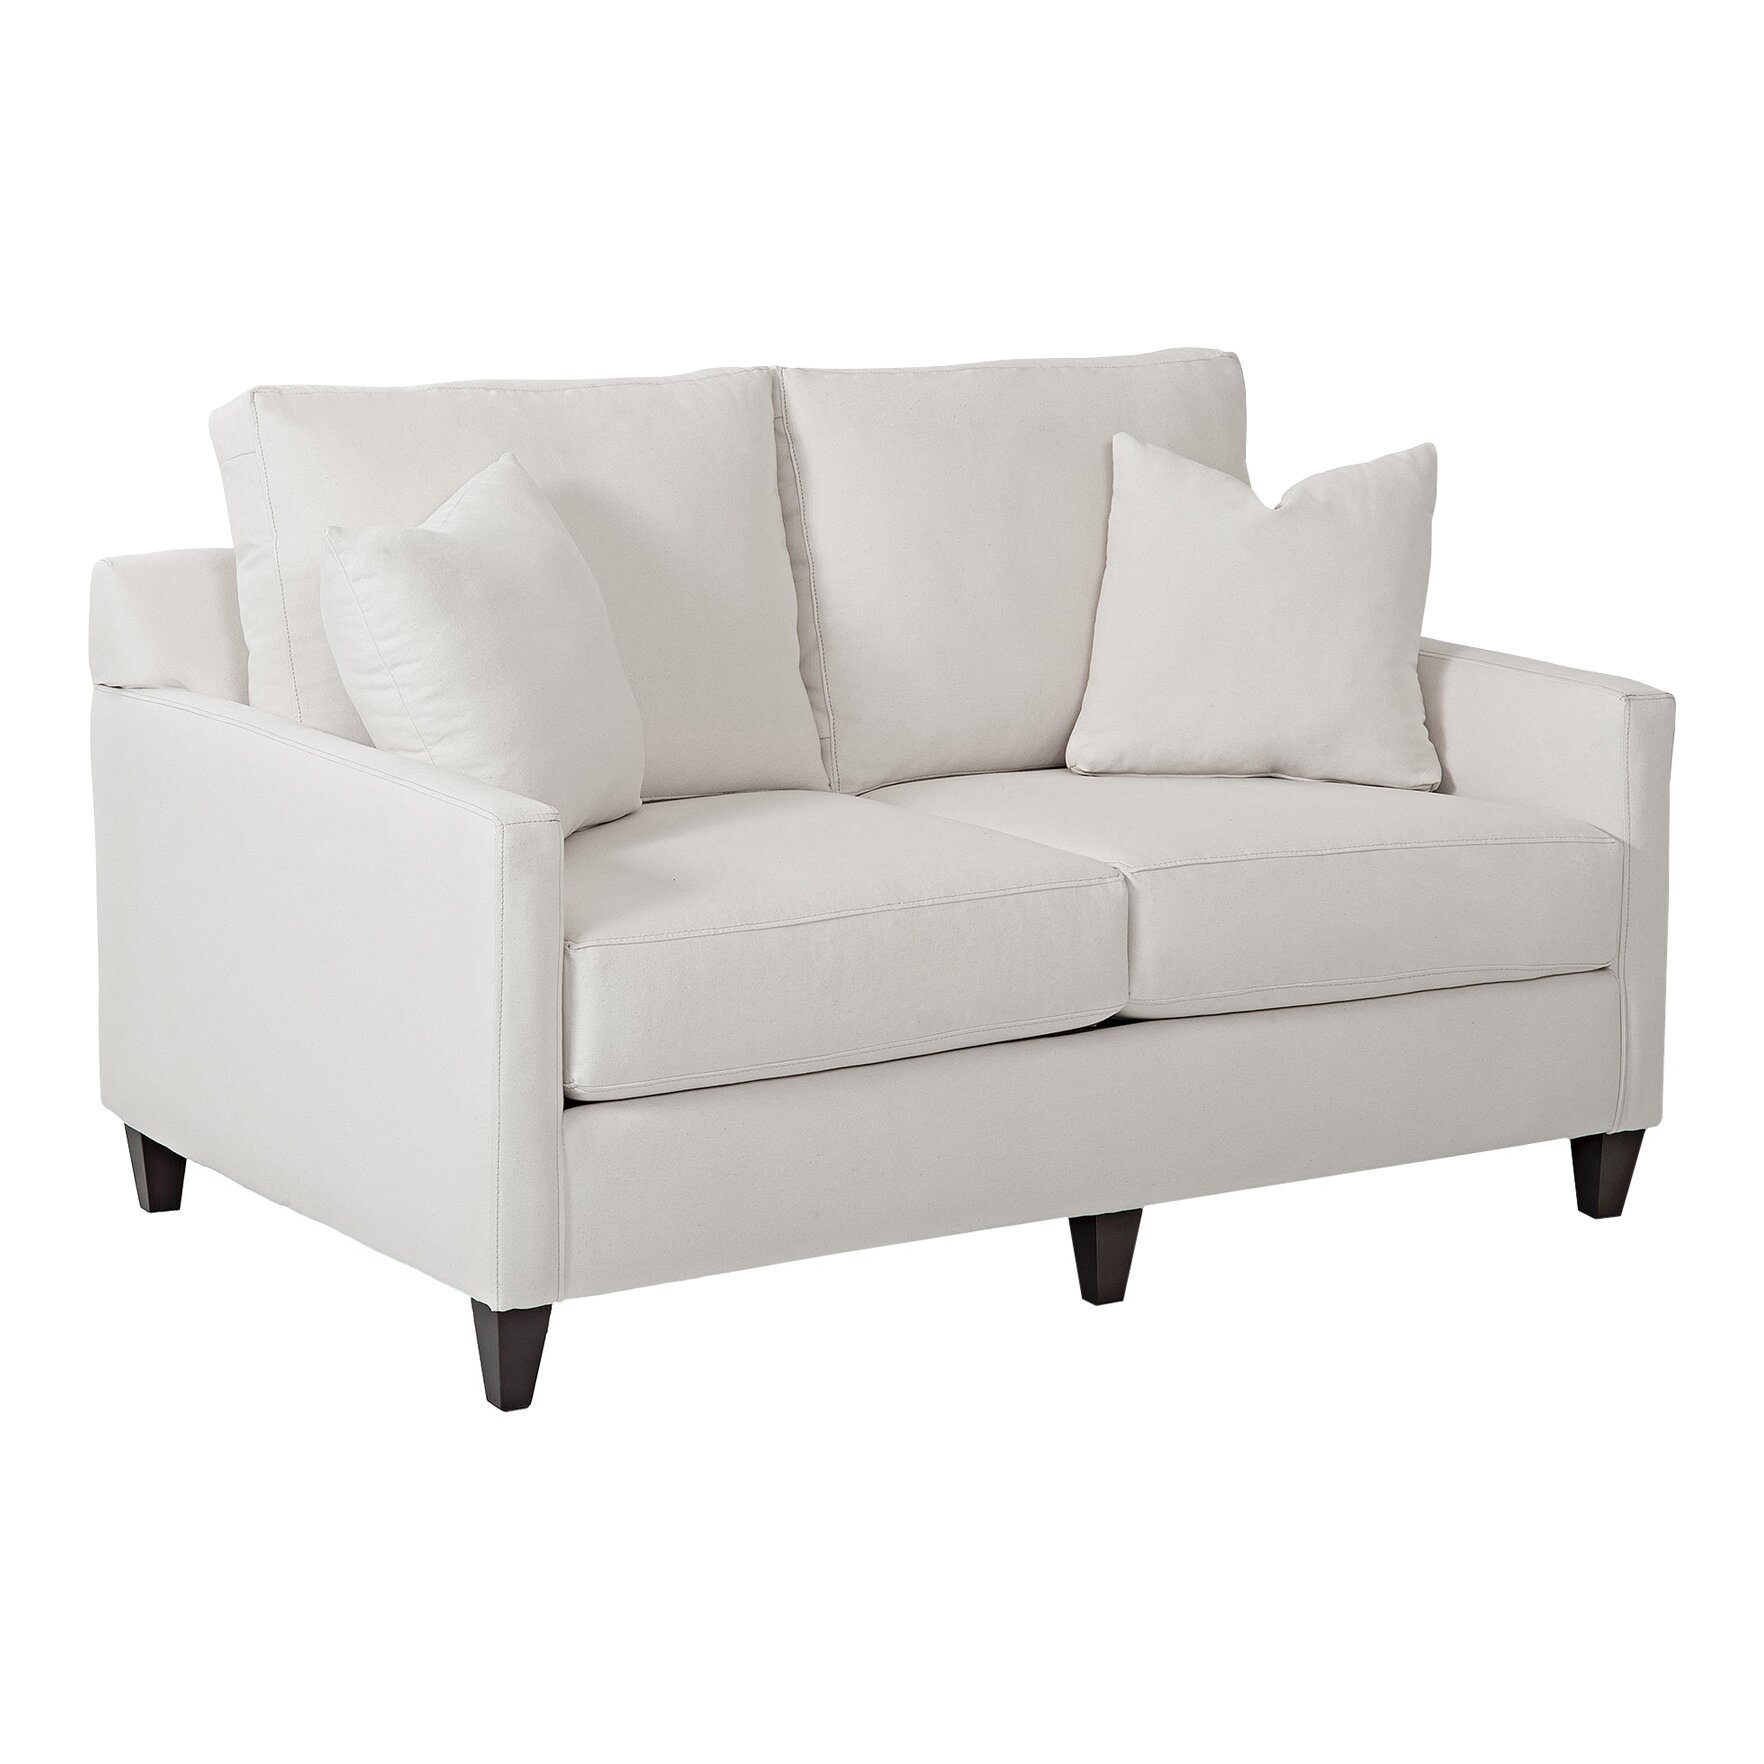 Wayfair Custom Upholstery Spencer Loveseat Amp Reviews Wayfair